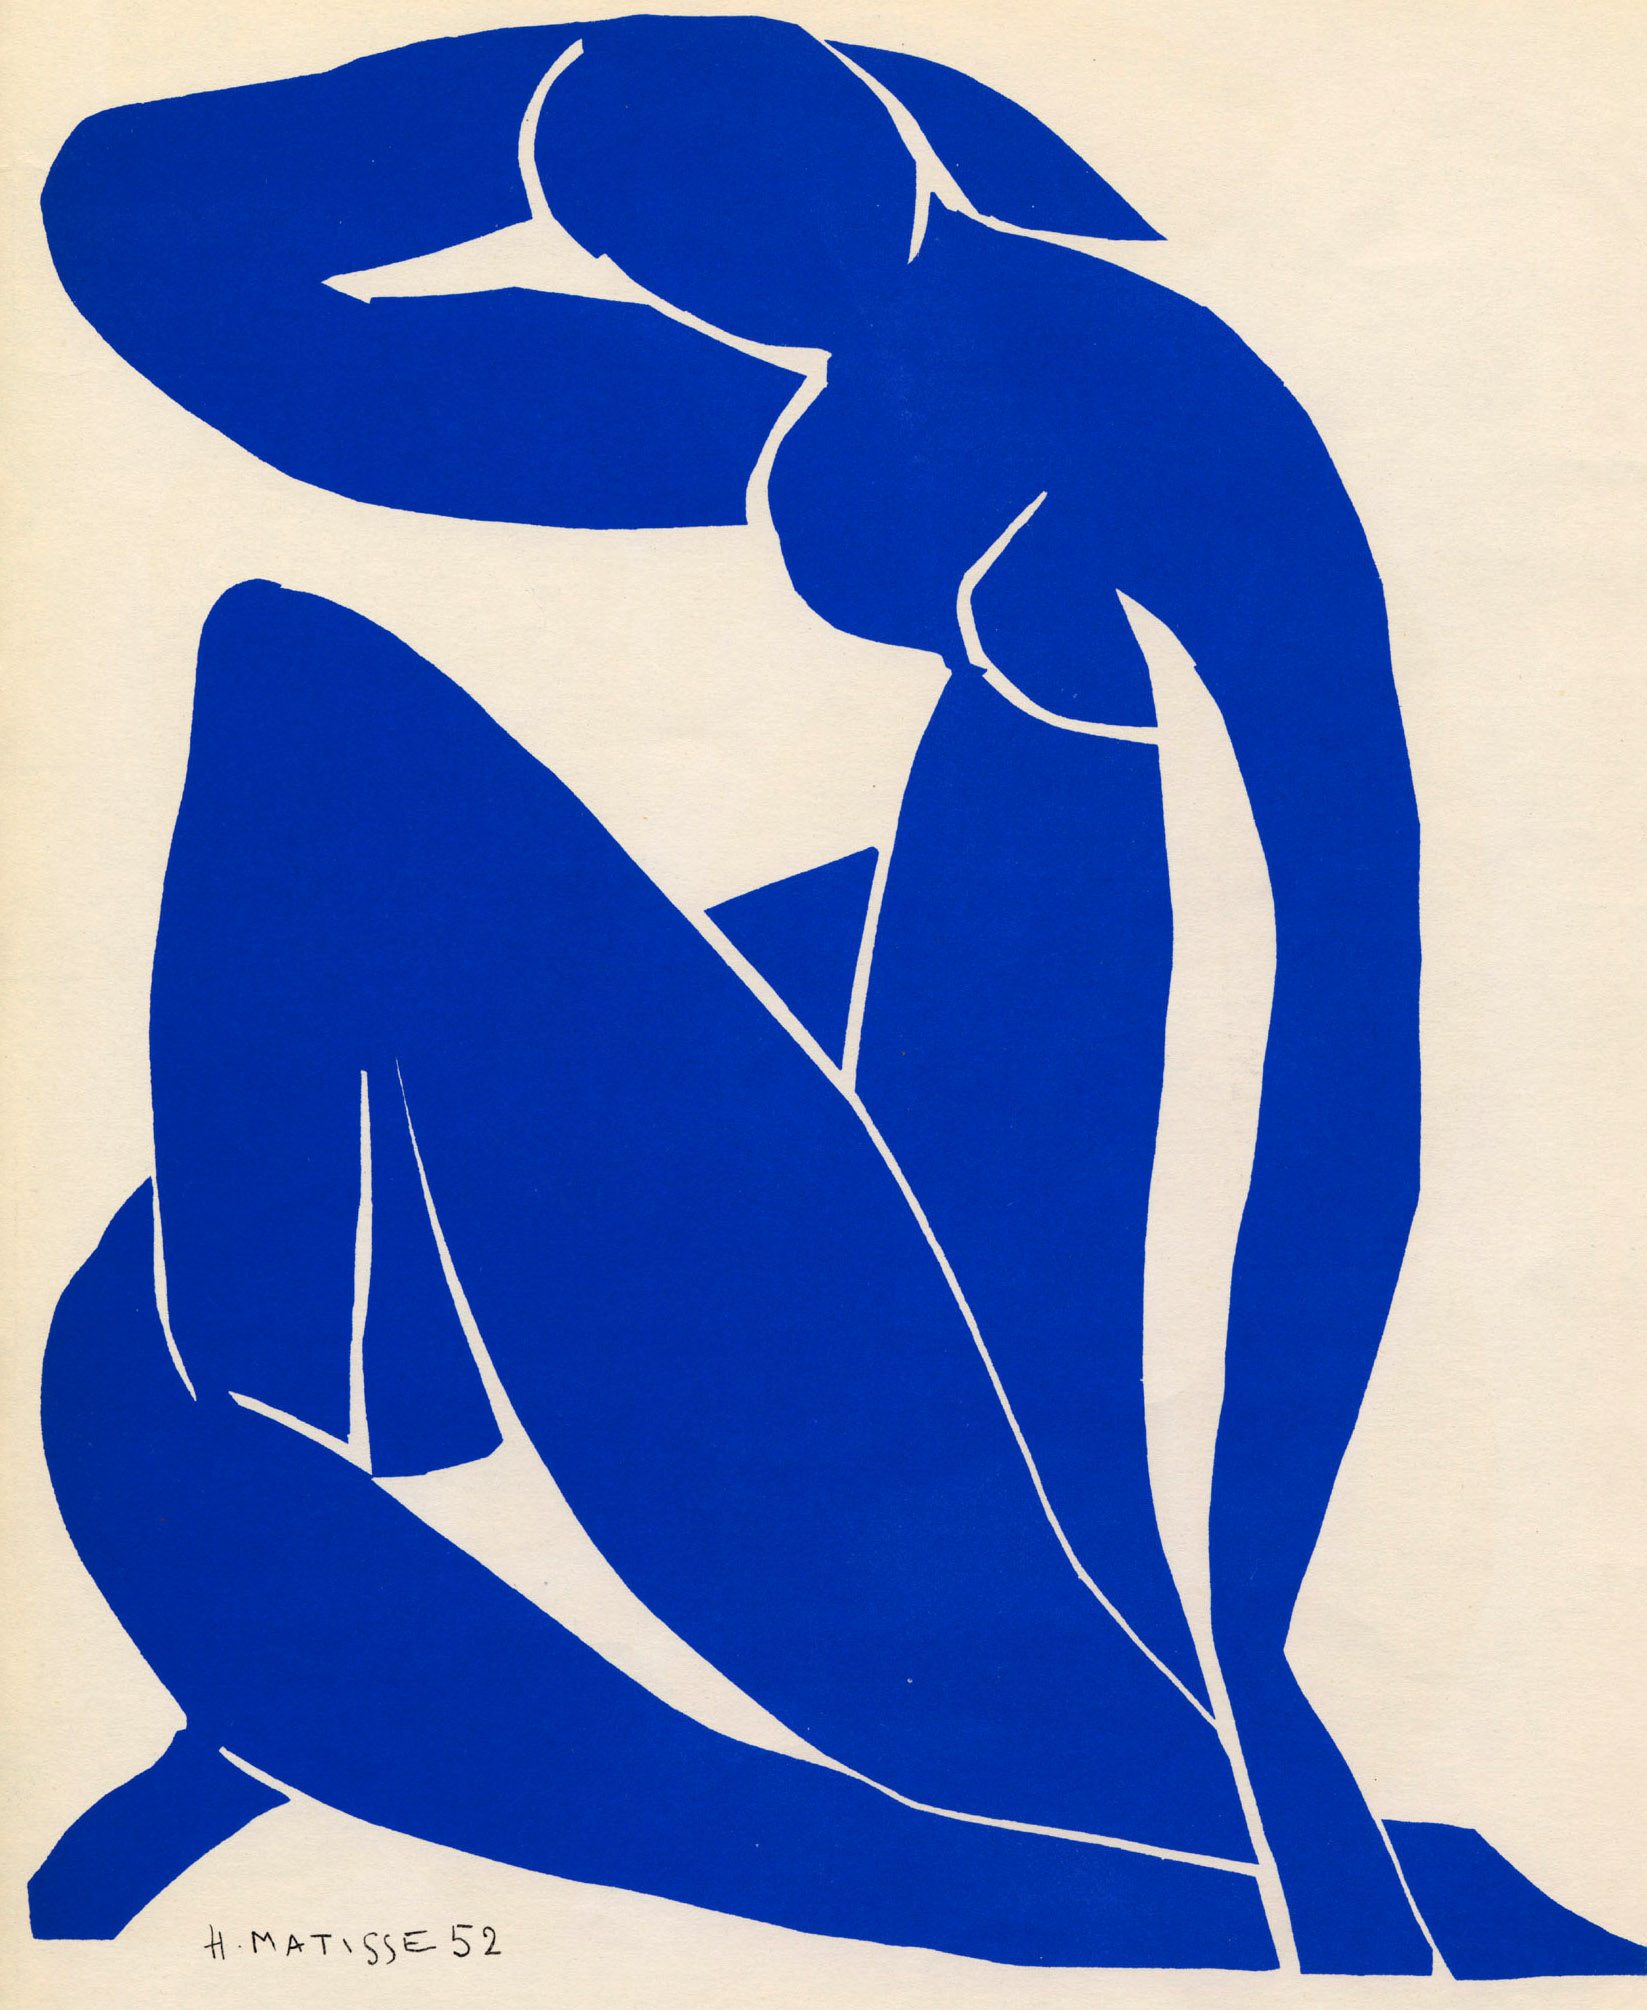 Matisse Cut-outs at Gala Gallery